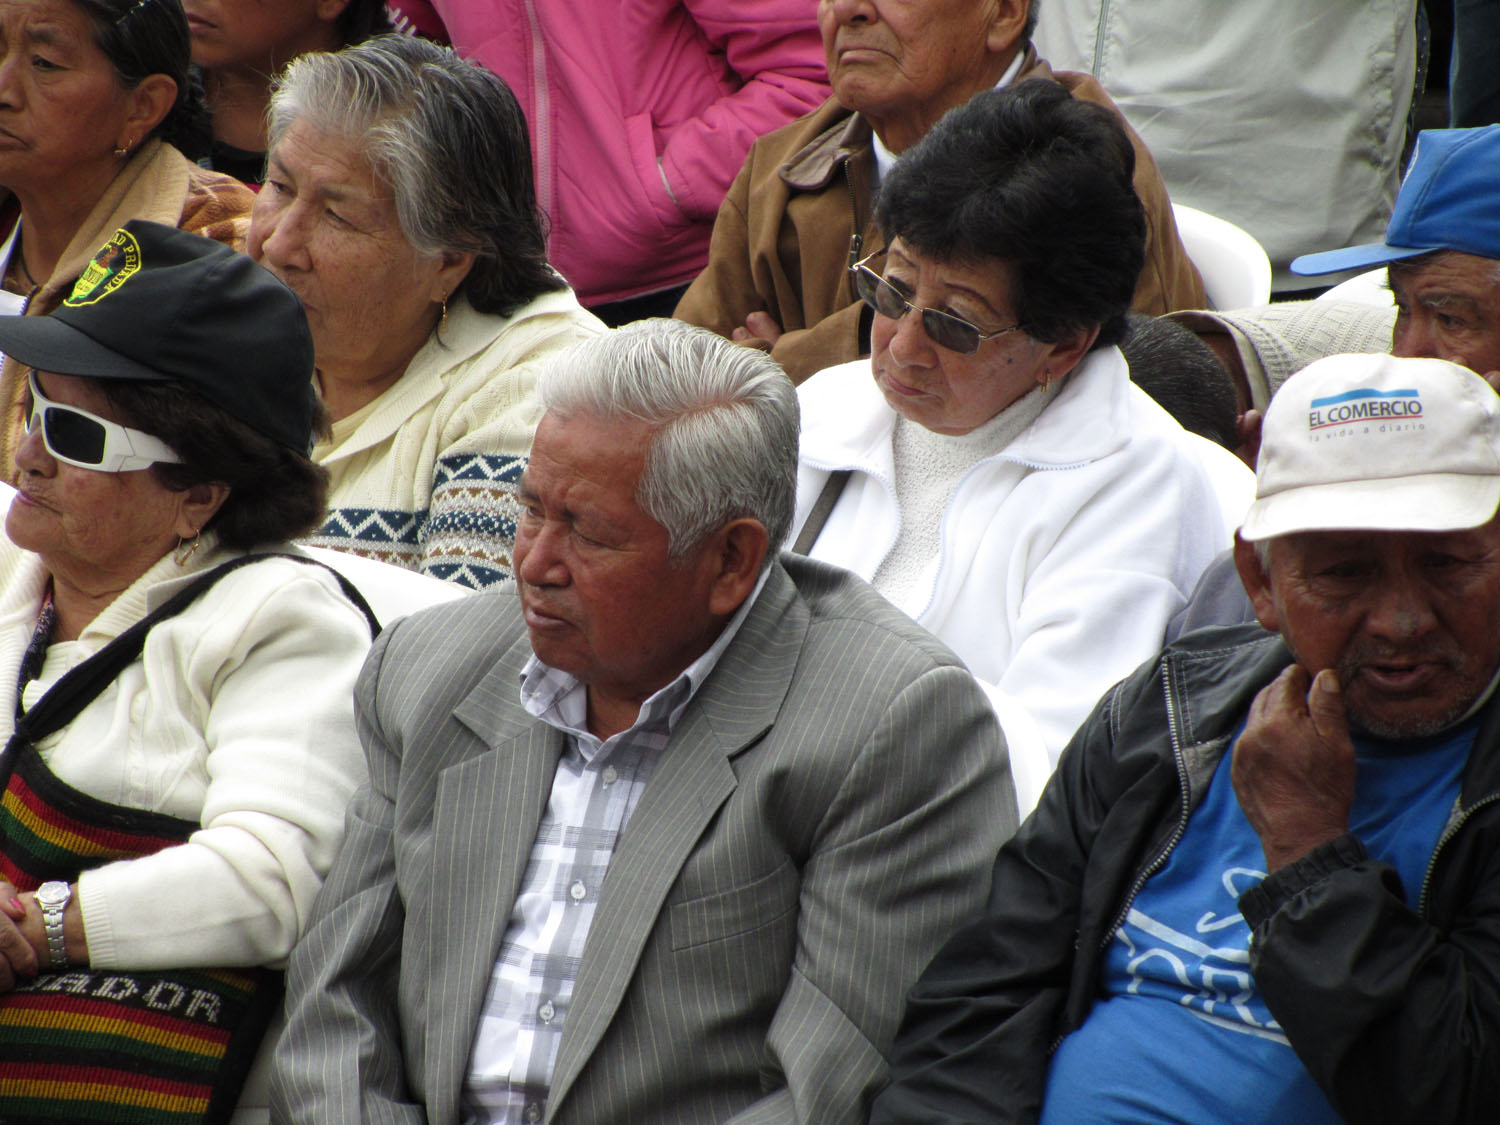 Ecuador-Quito-Plaza-Spectators